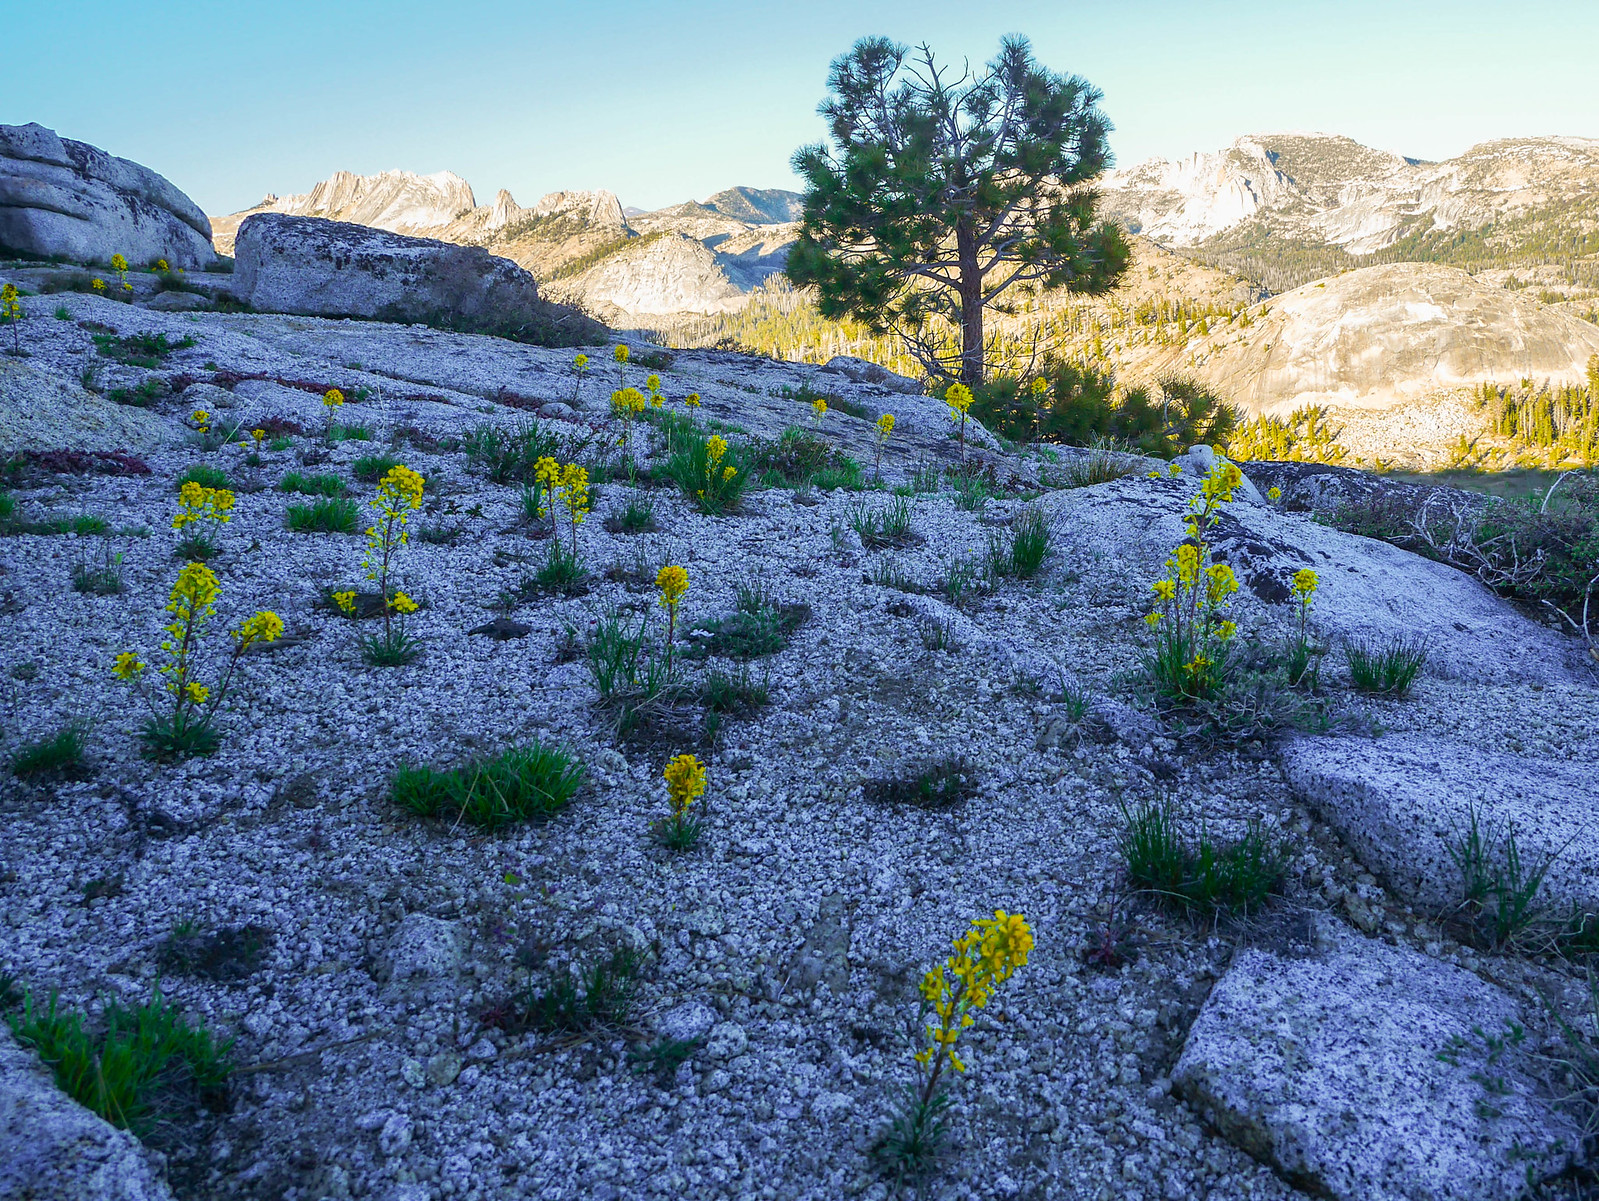 Seep-sing monkeyflower with the Matthes Crest and Sunrise domes in the background